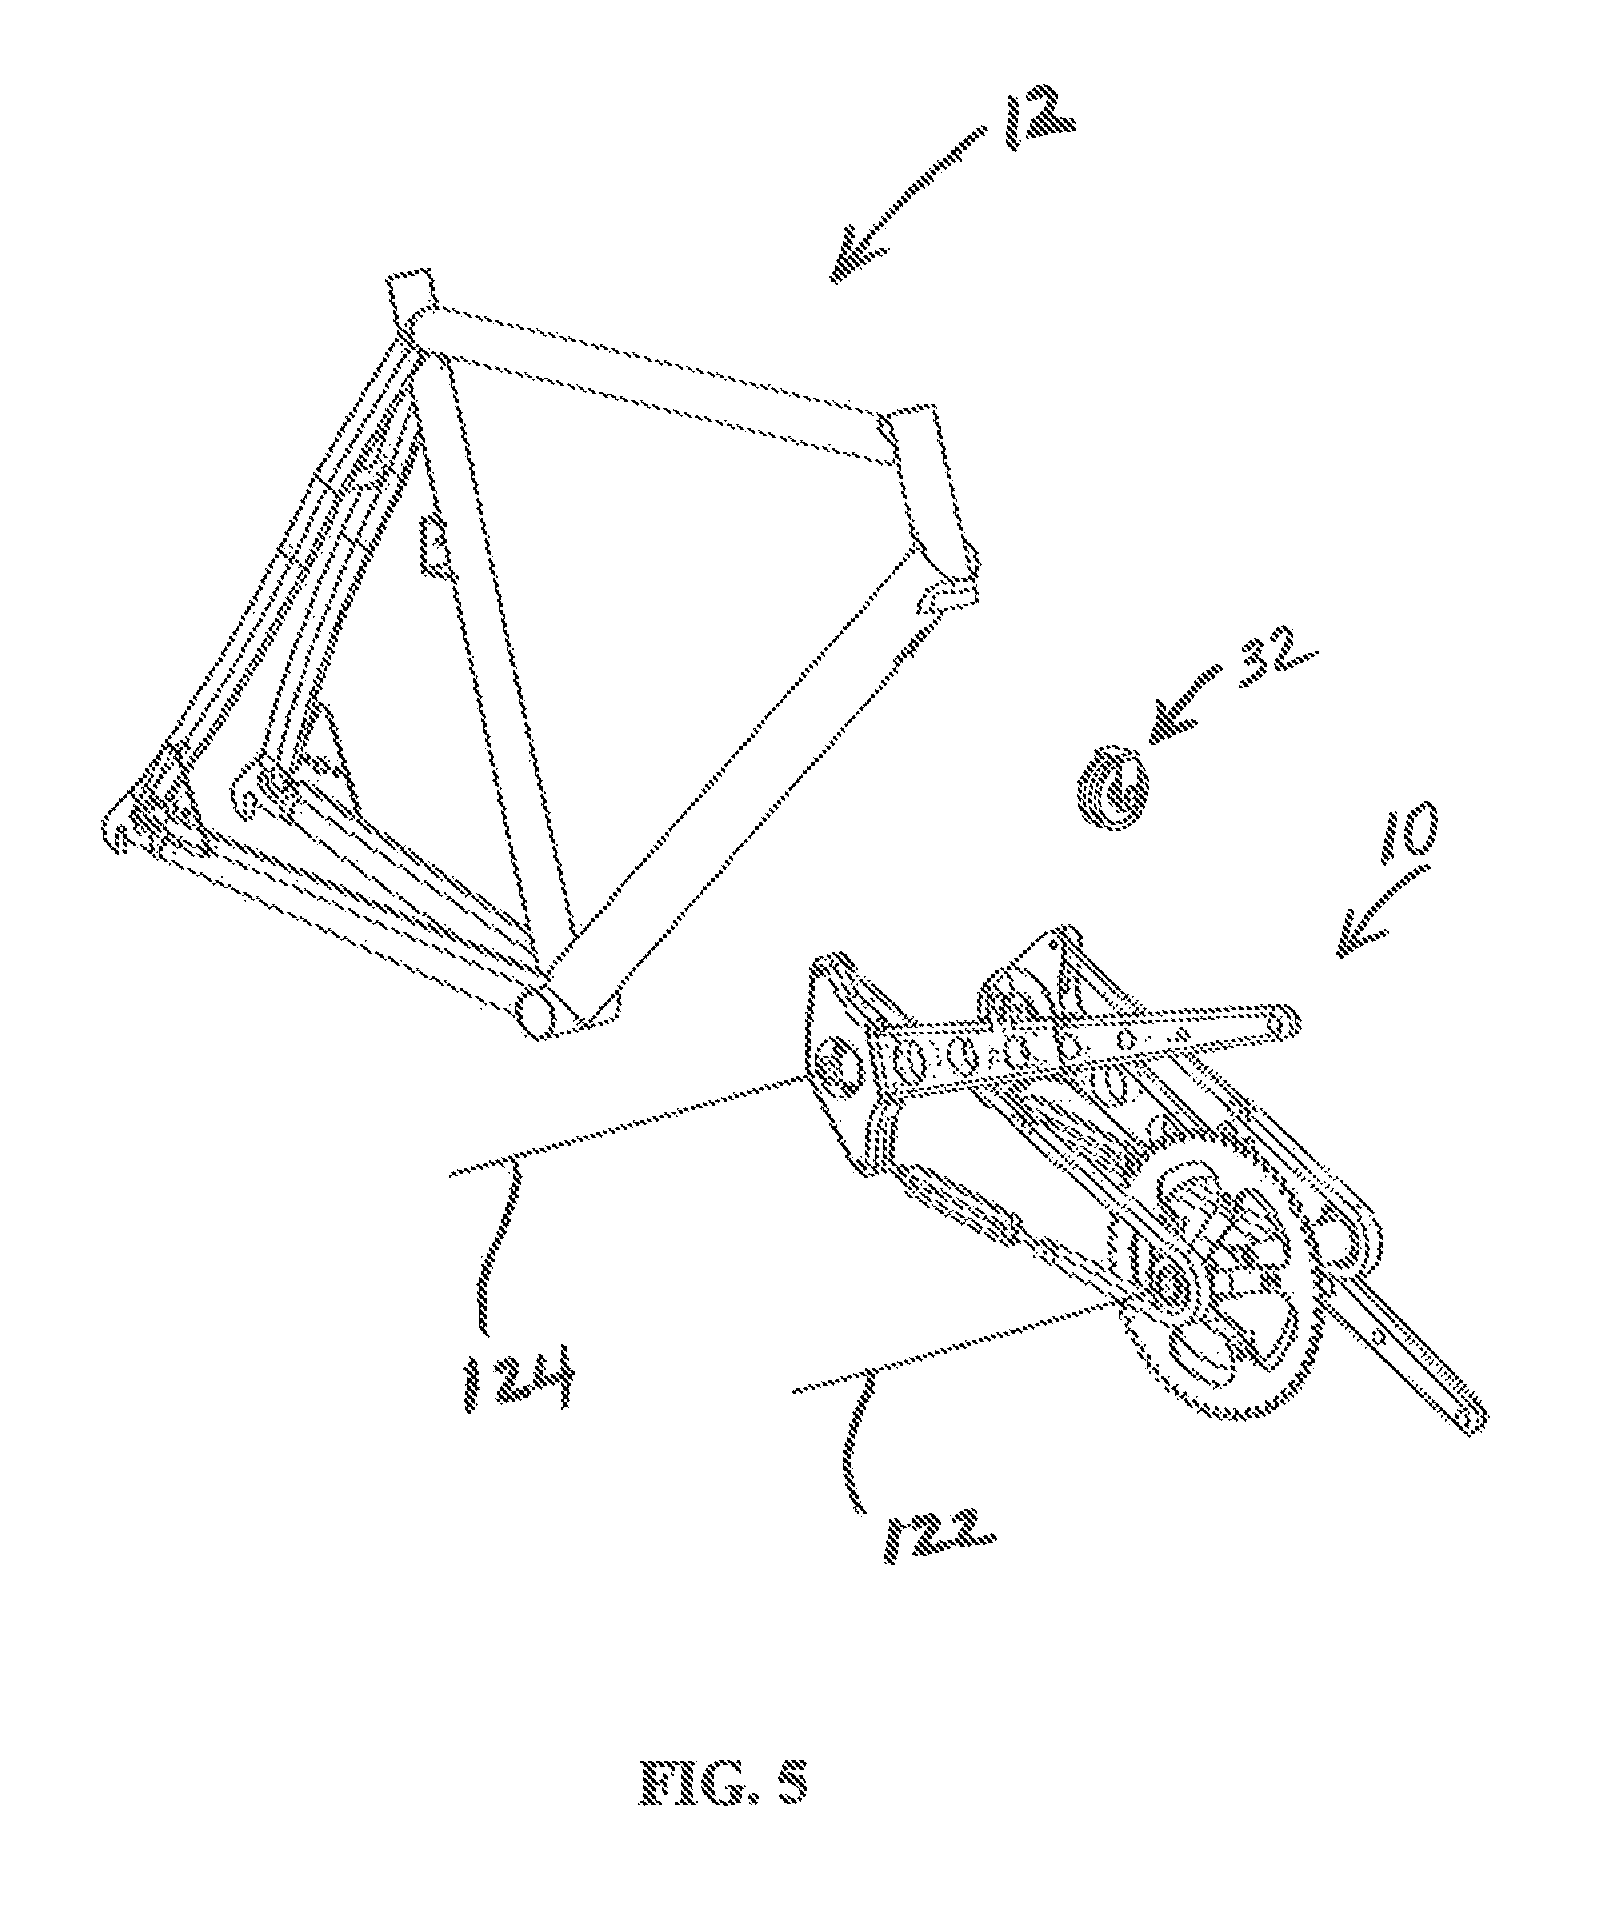 hight resolution of patent us8632089 mechanism for converting reciprocal